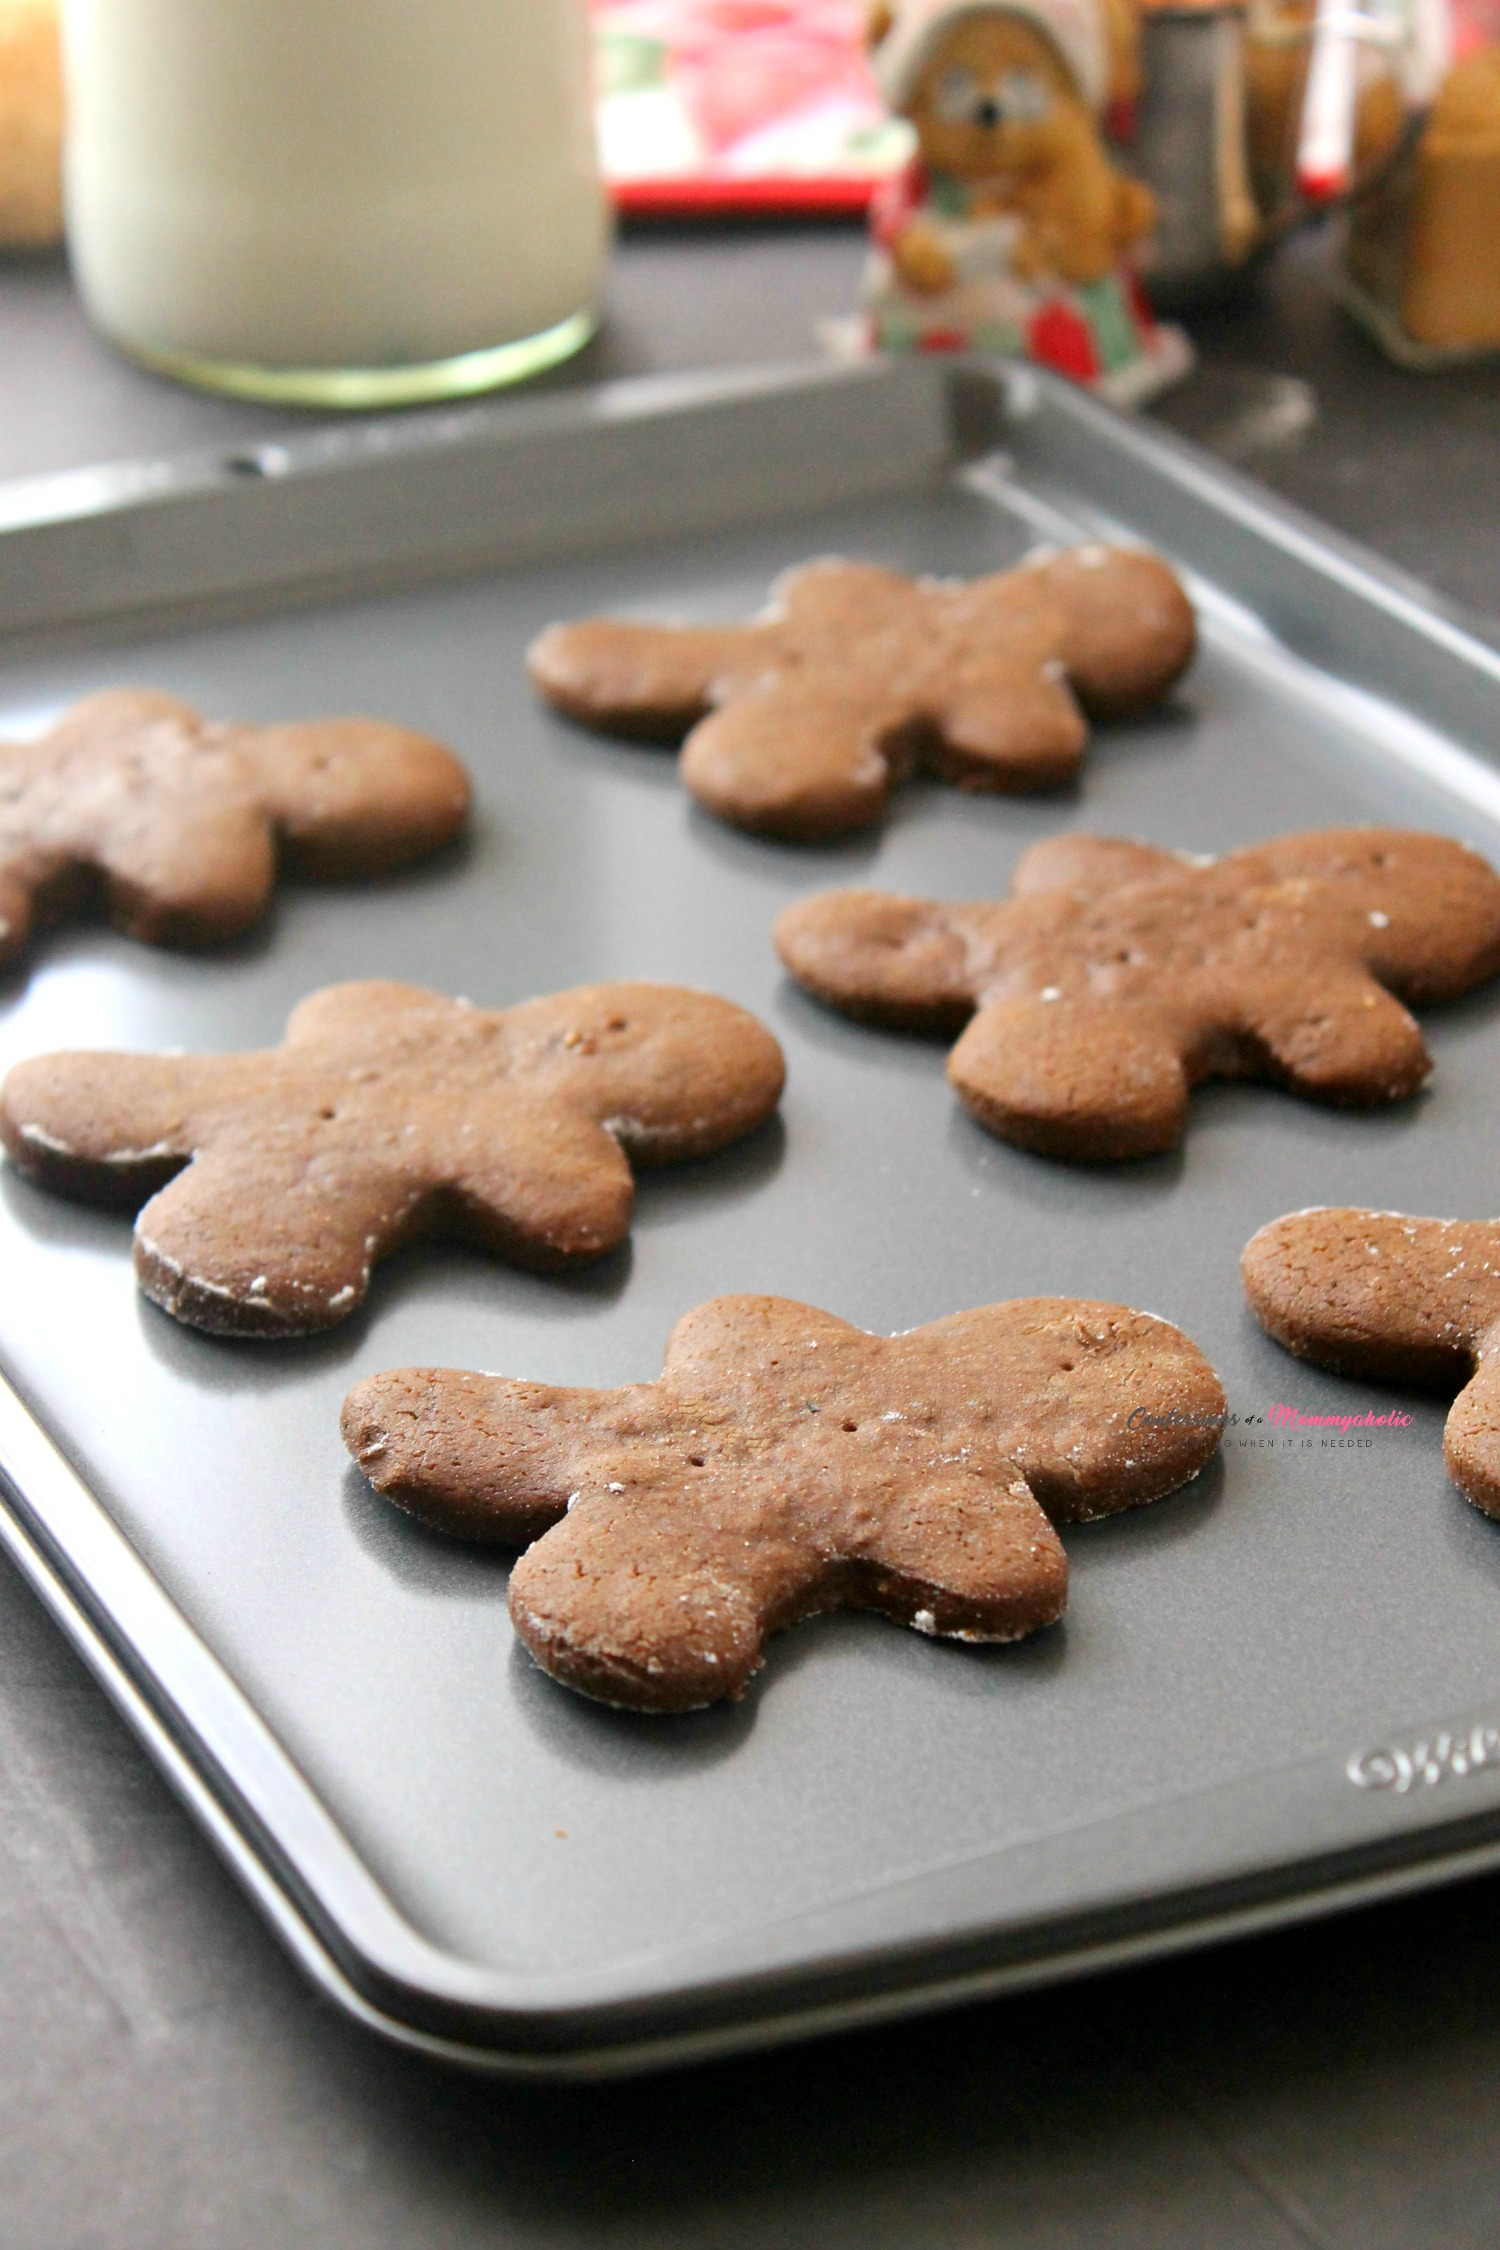 Gingerbread Man Cookies Baked